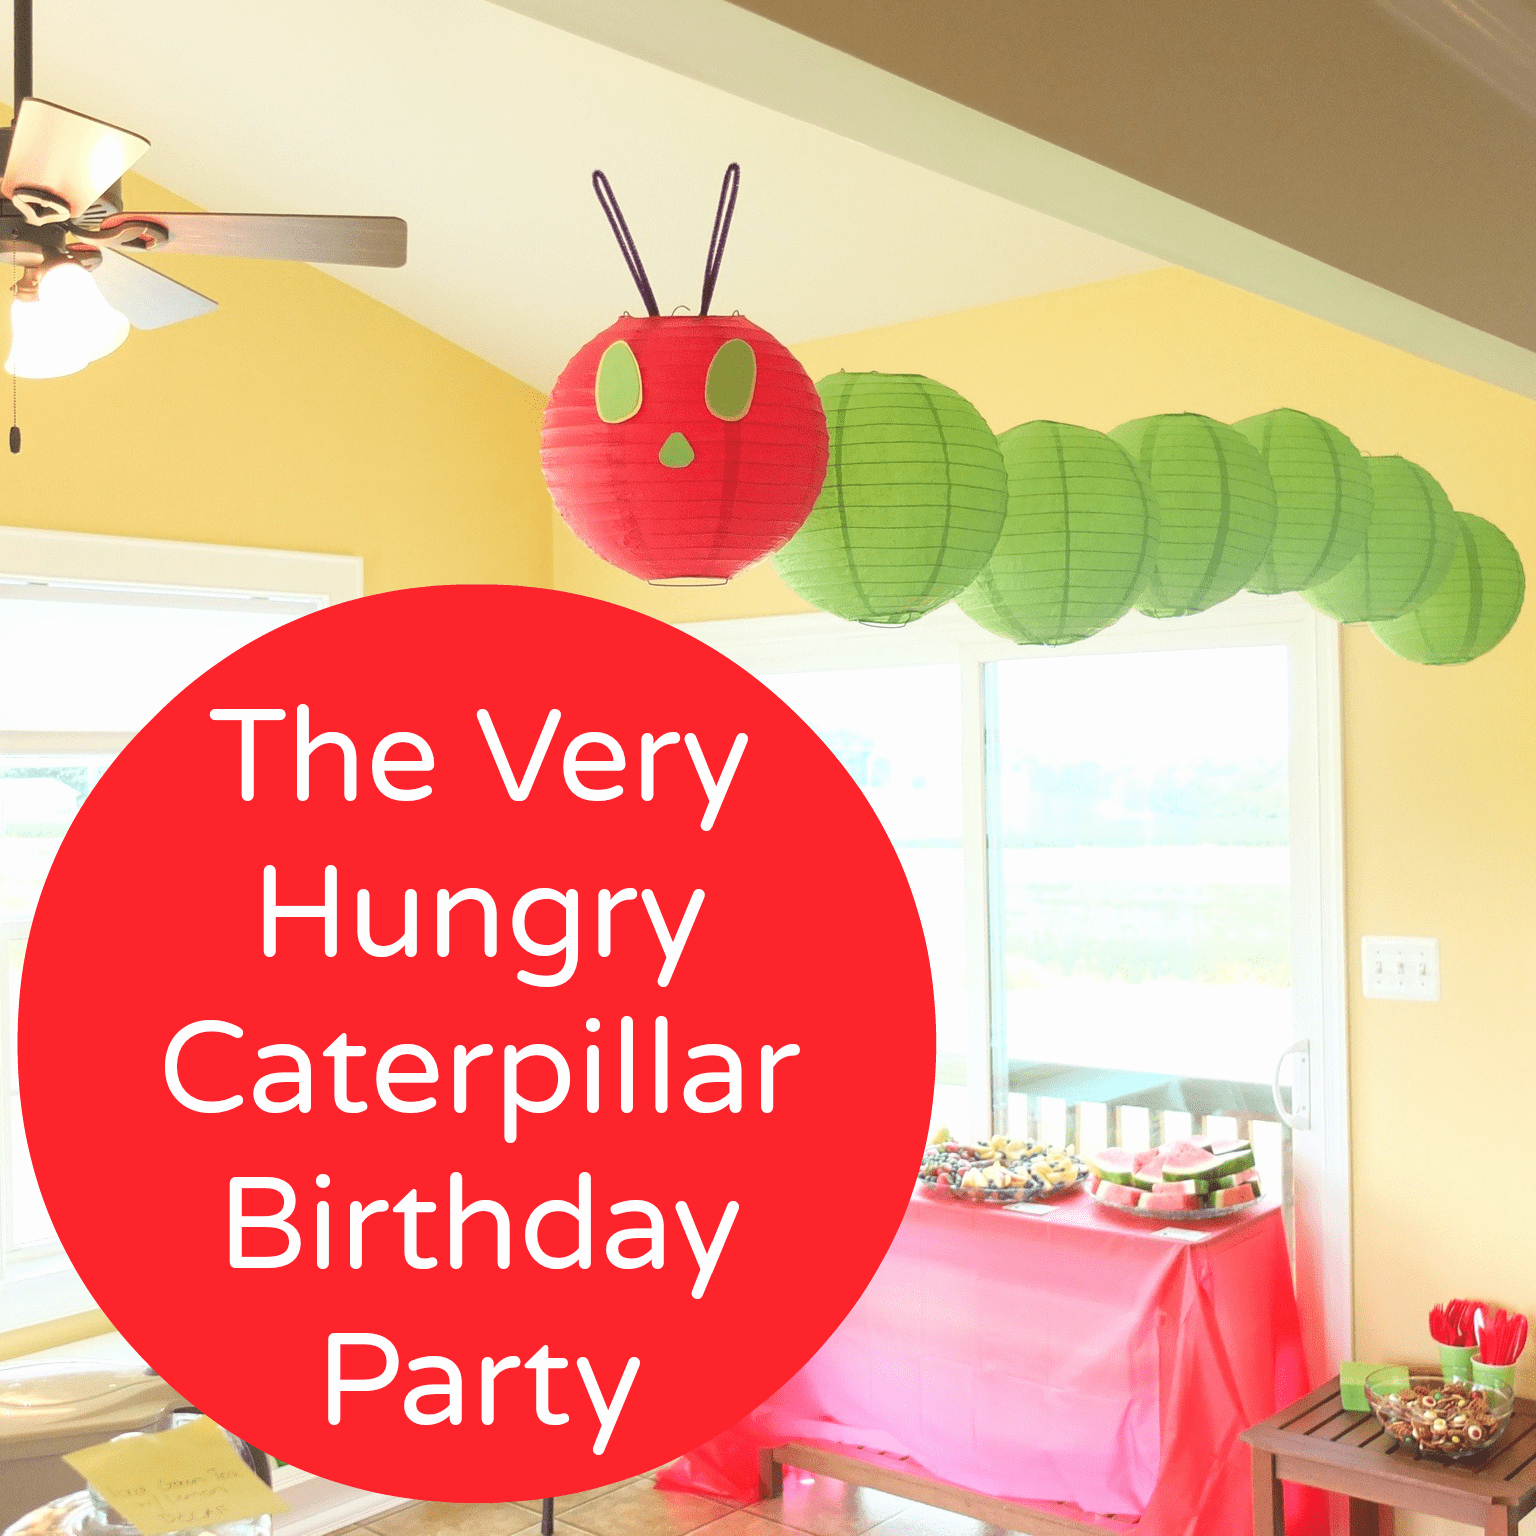 Very Hungry Caterpillar Invitation Template Luxury the Very Hungry Caterpillar Birthday Party Pick Any Two